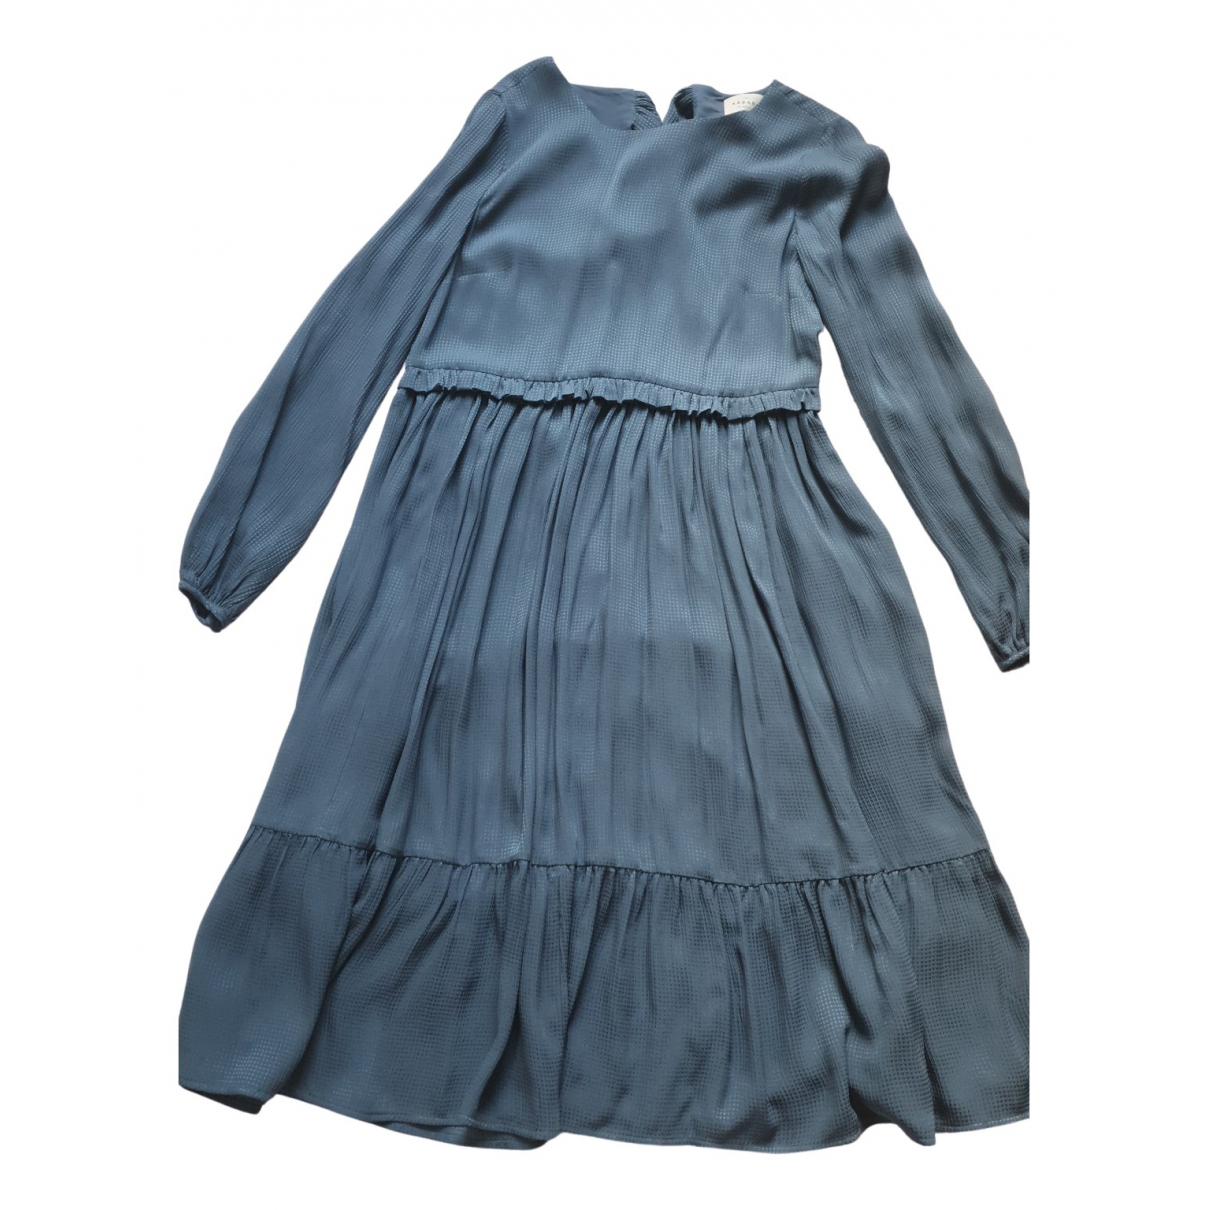 Sezane Fall Winter 2019 Kleid in  Blau Seide